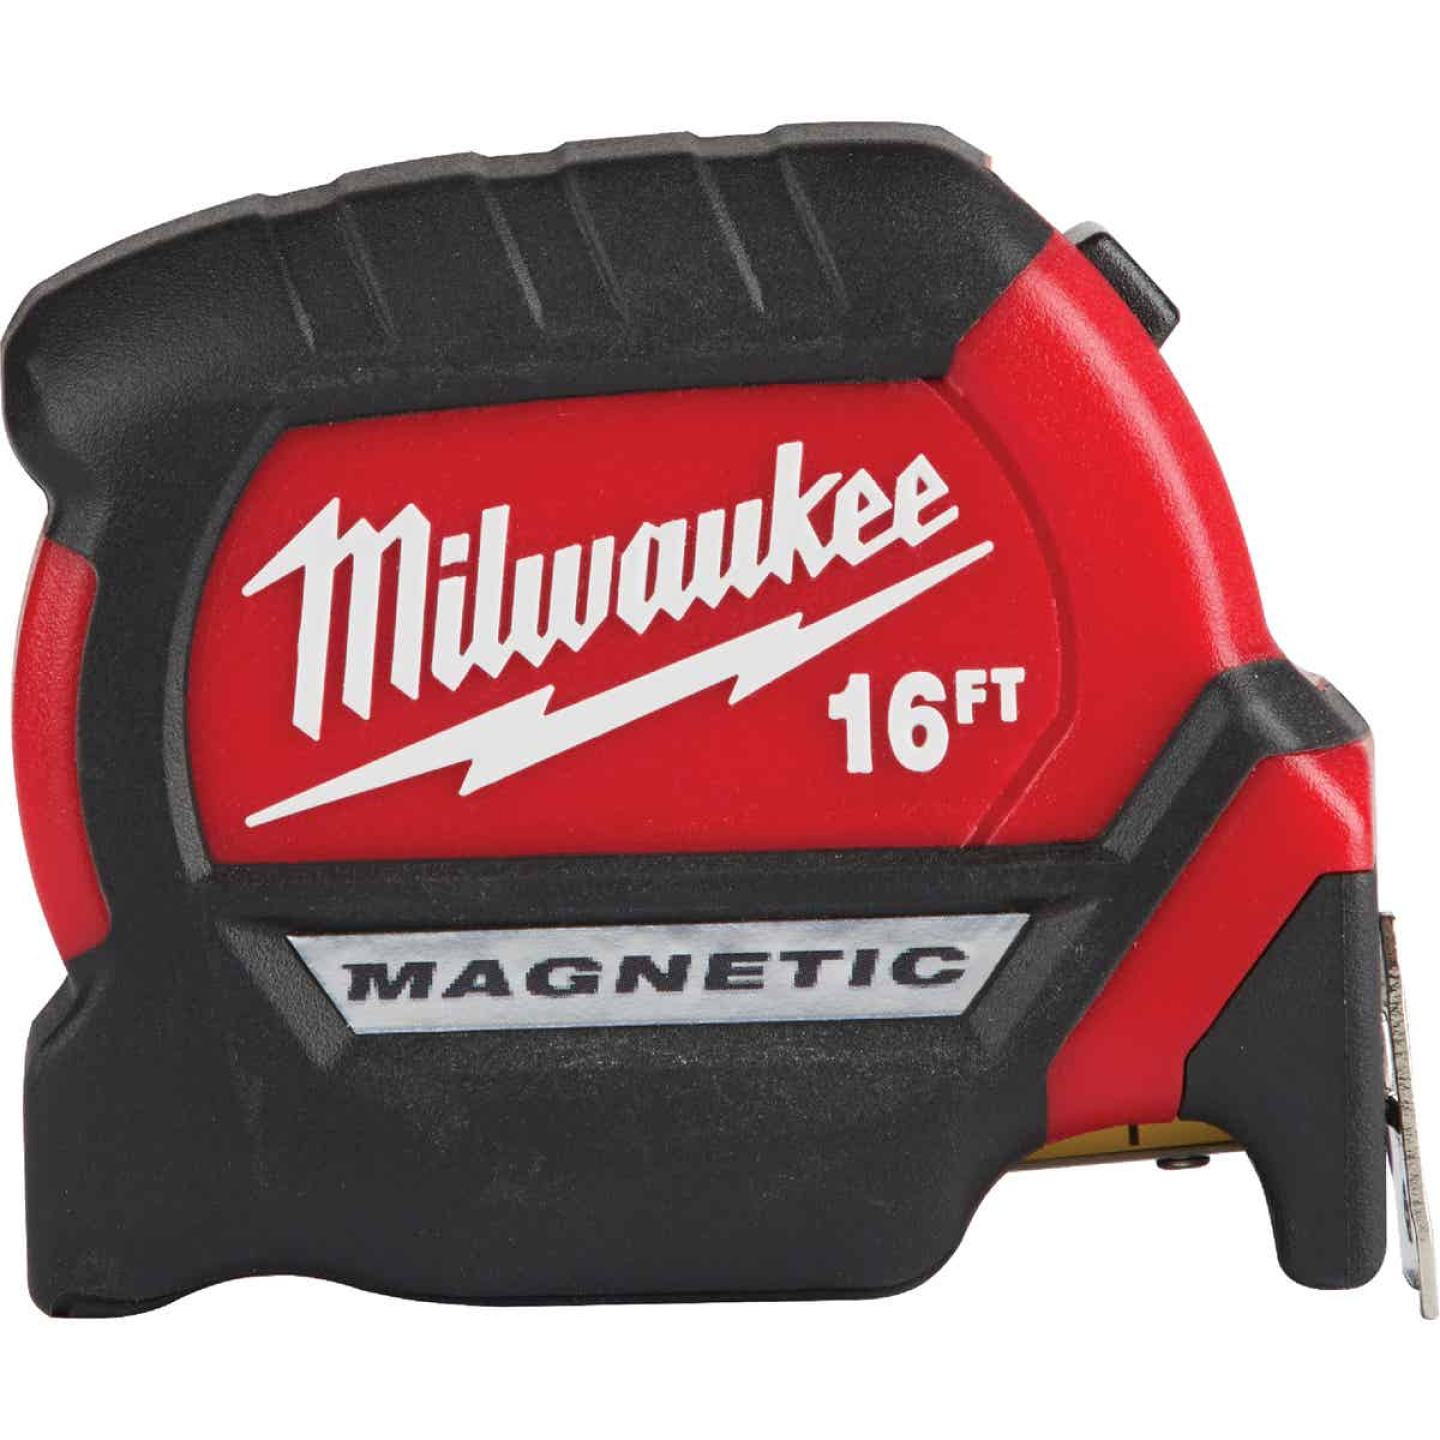 Milwaukee 16 Ft. Compact Wide Blade Magnetic Tape Measure Image 1